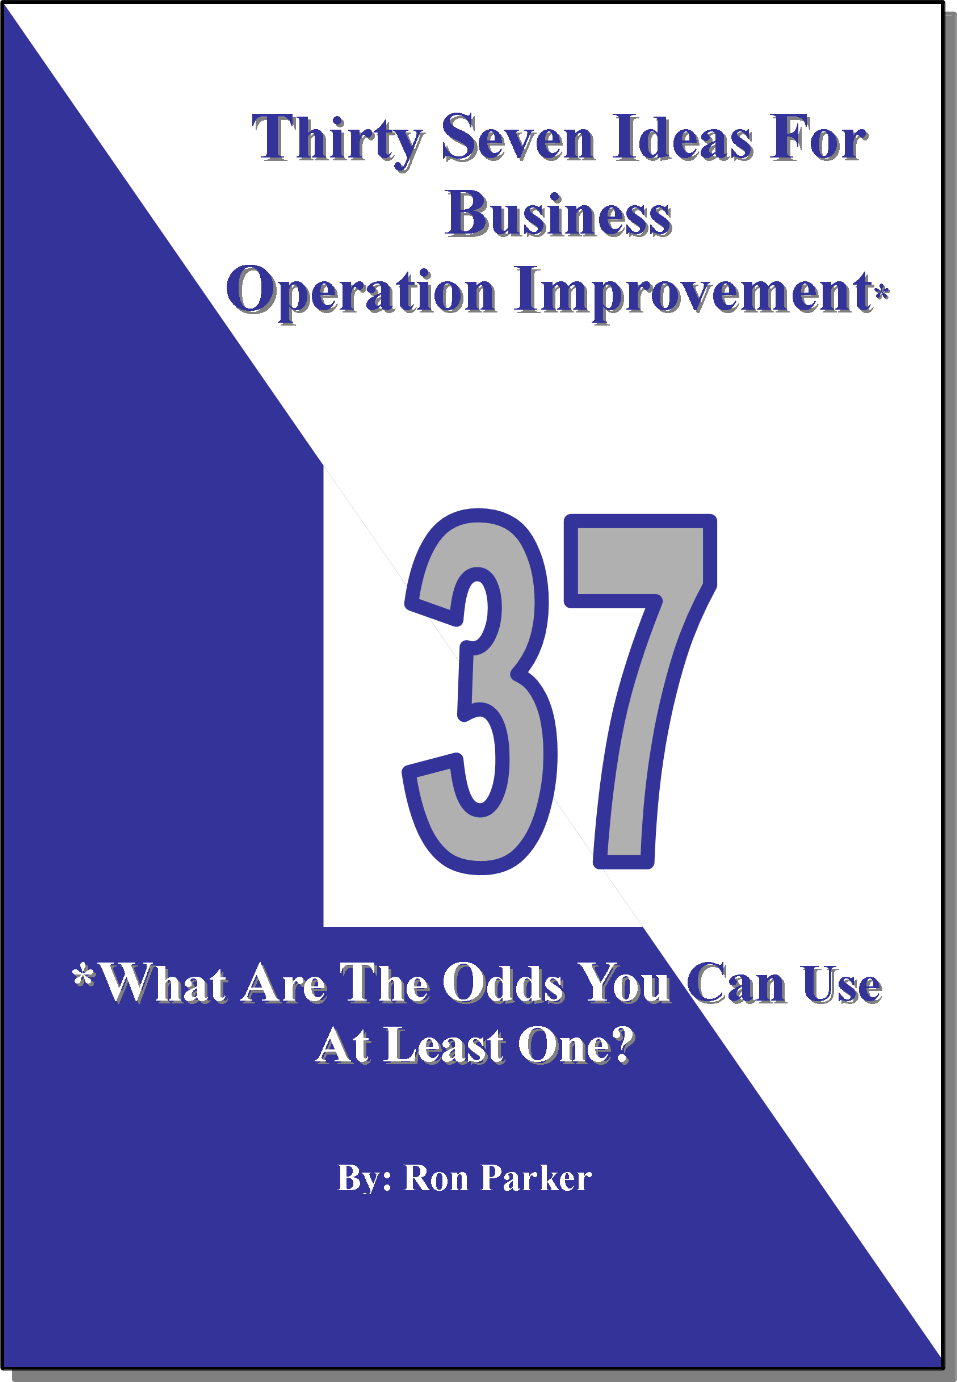 Thirty Seven Ideas For Business Operation Improvement*